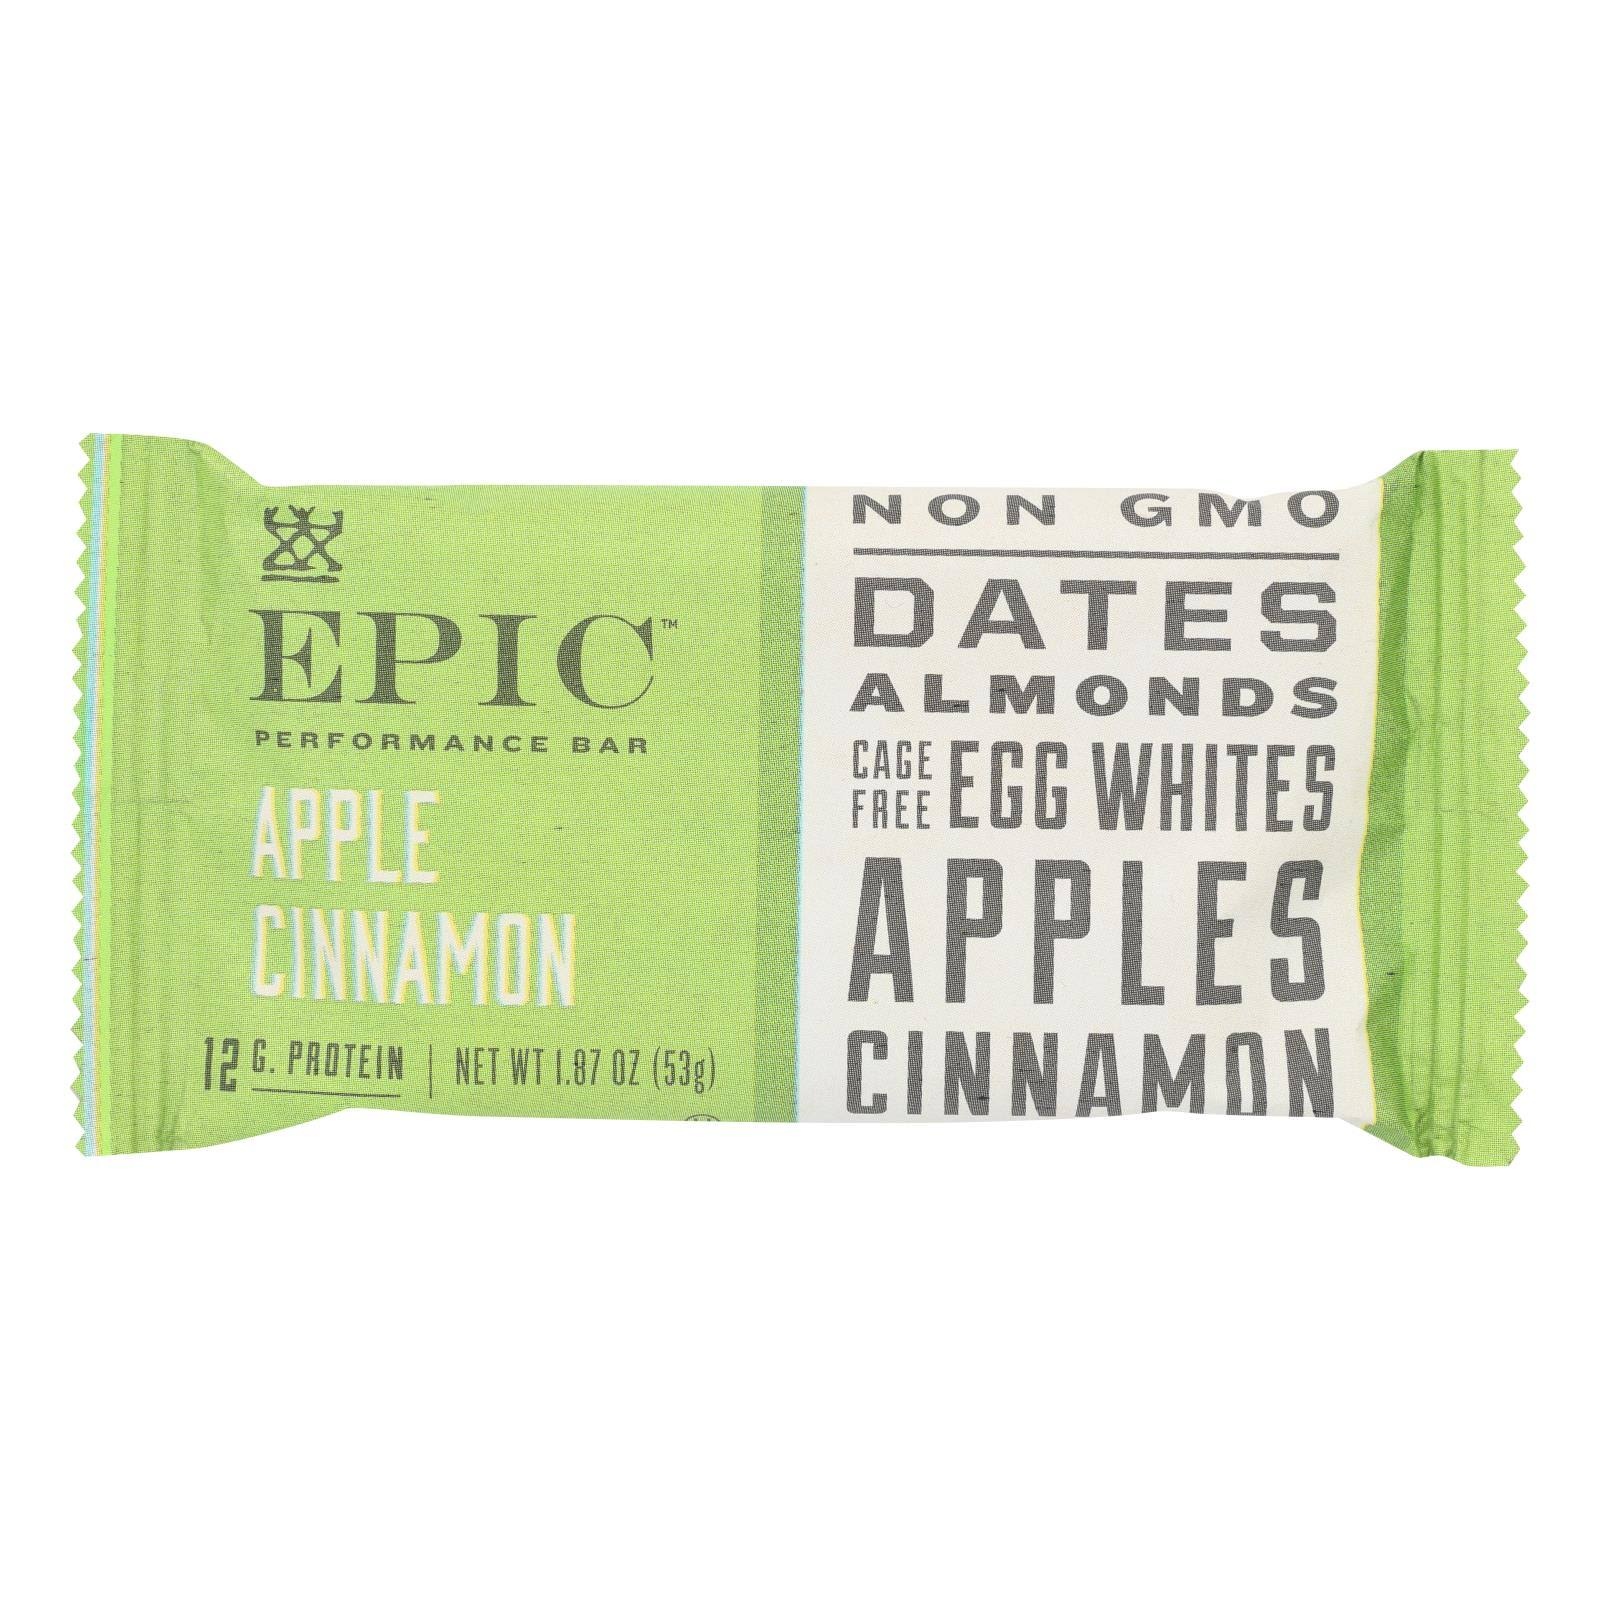 Epic: Apple Cinnamon Performance Bar, 1.87 oz